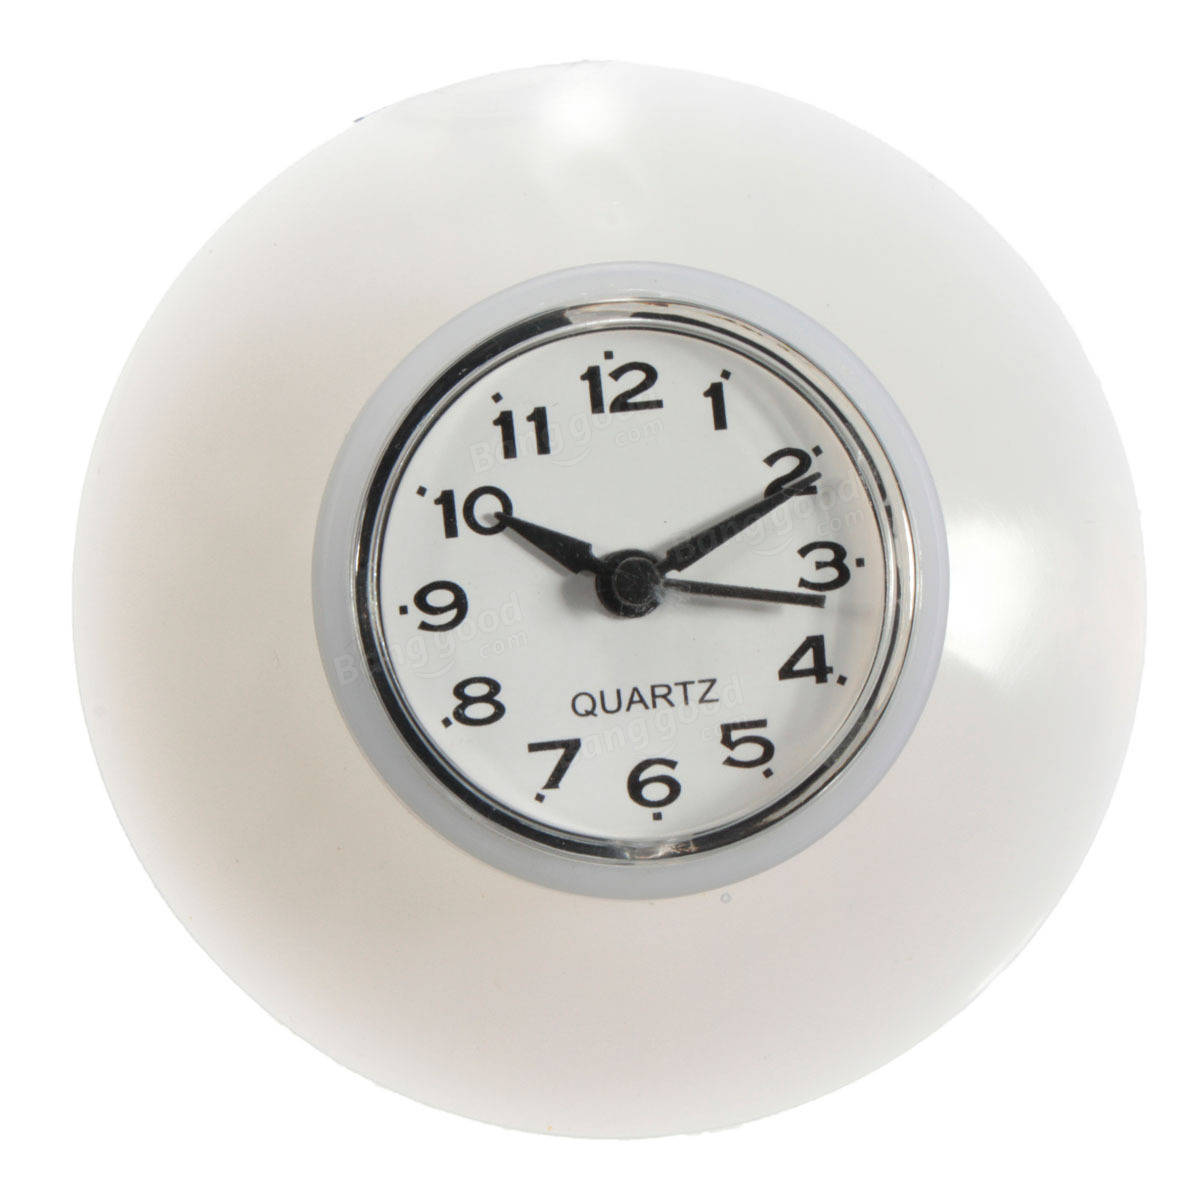 Clocks for bathroom wall - Bathroom Kitchen Waterproof Wall Clock Resistant Timer Suction Cup